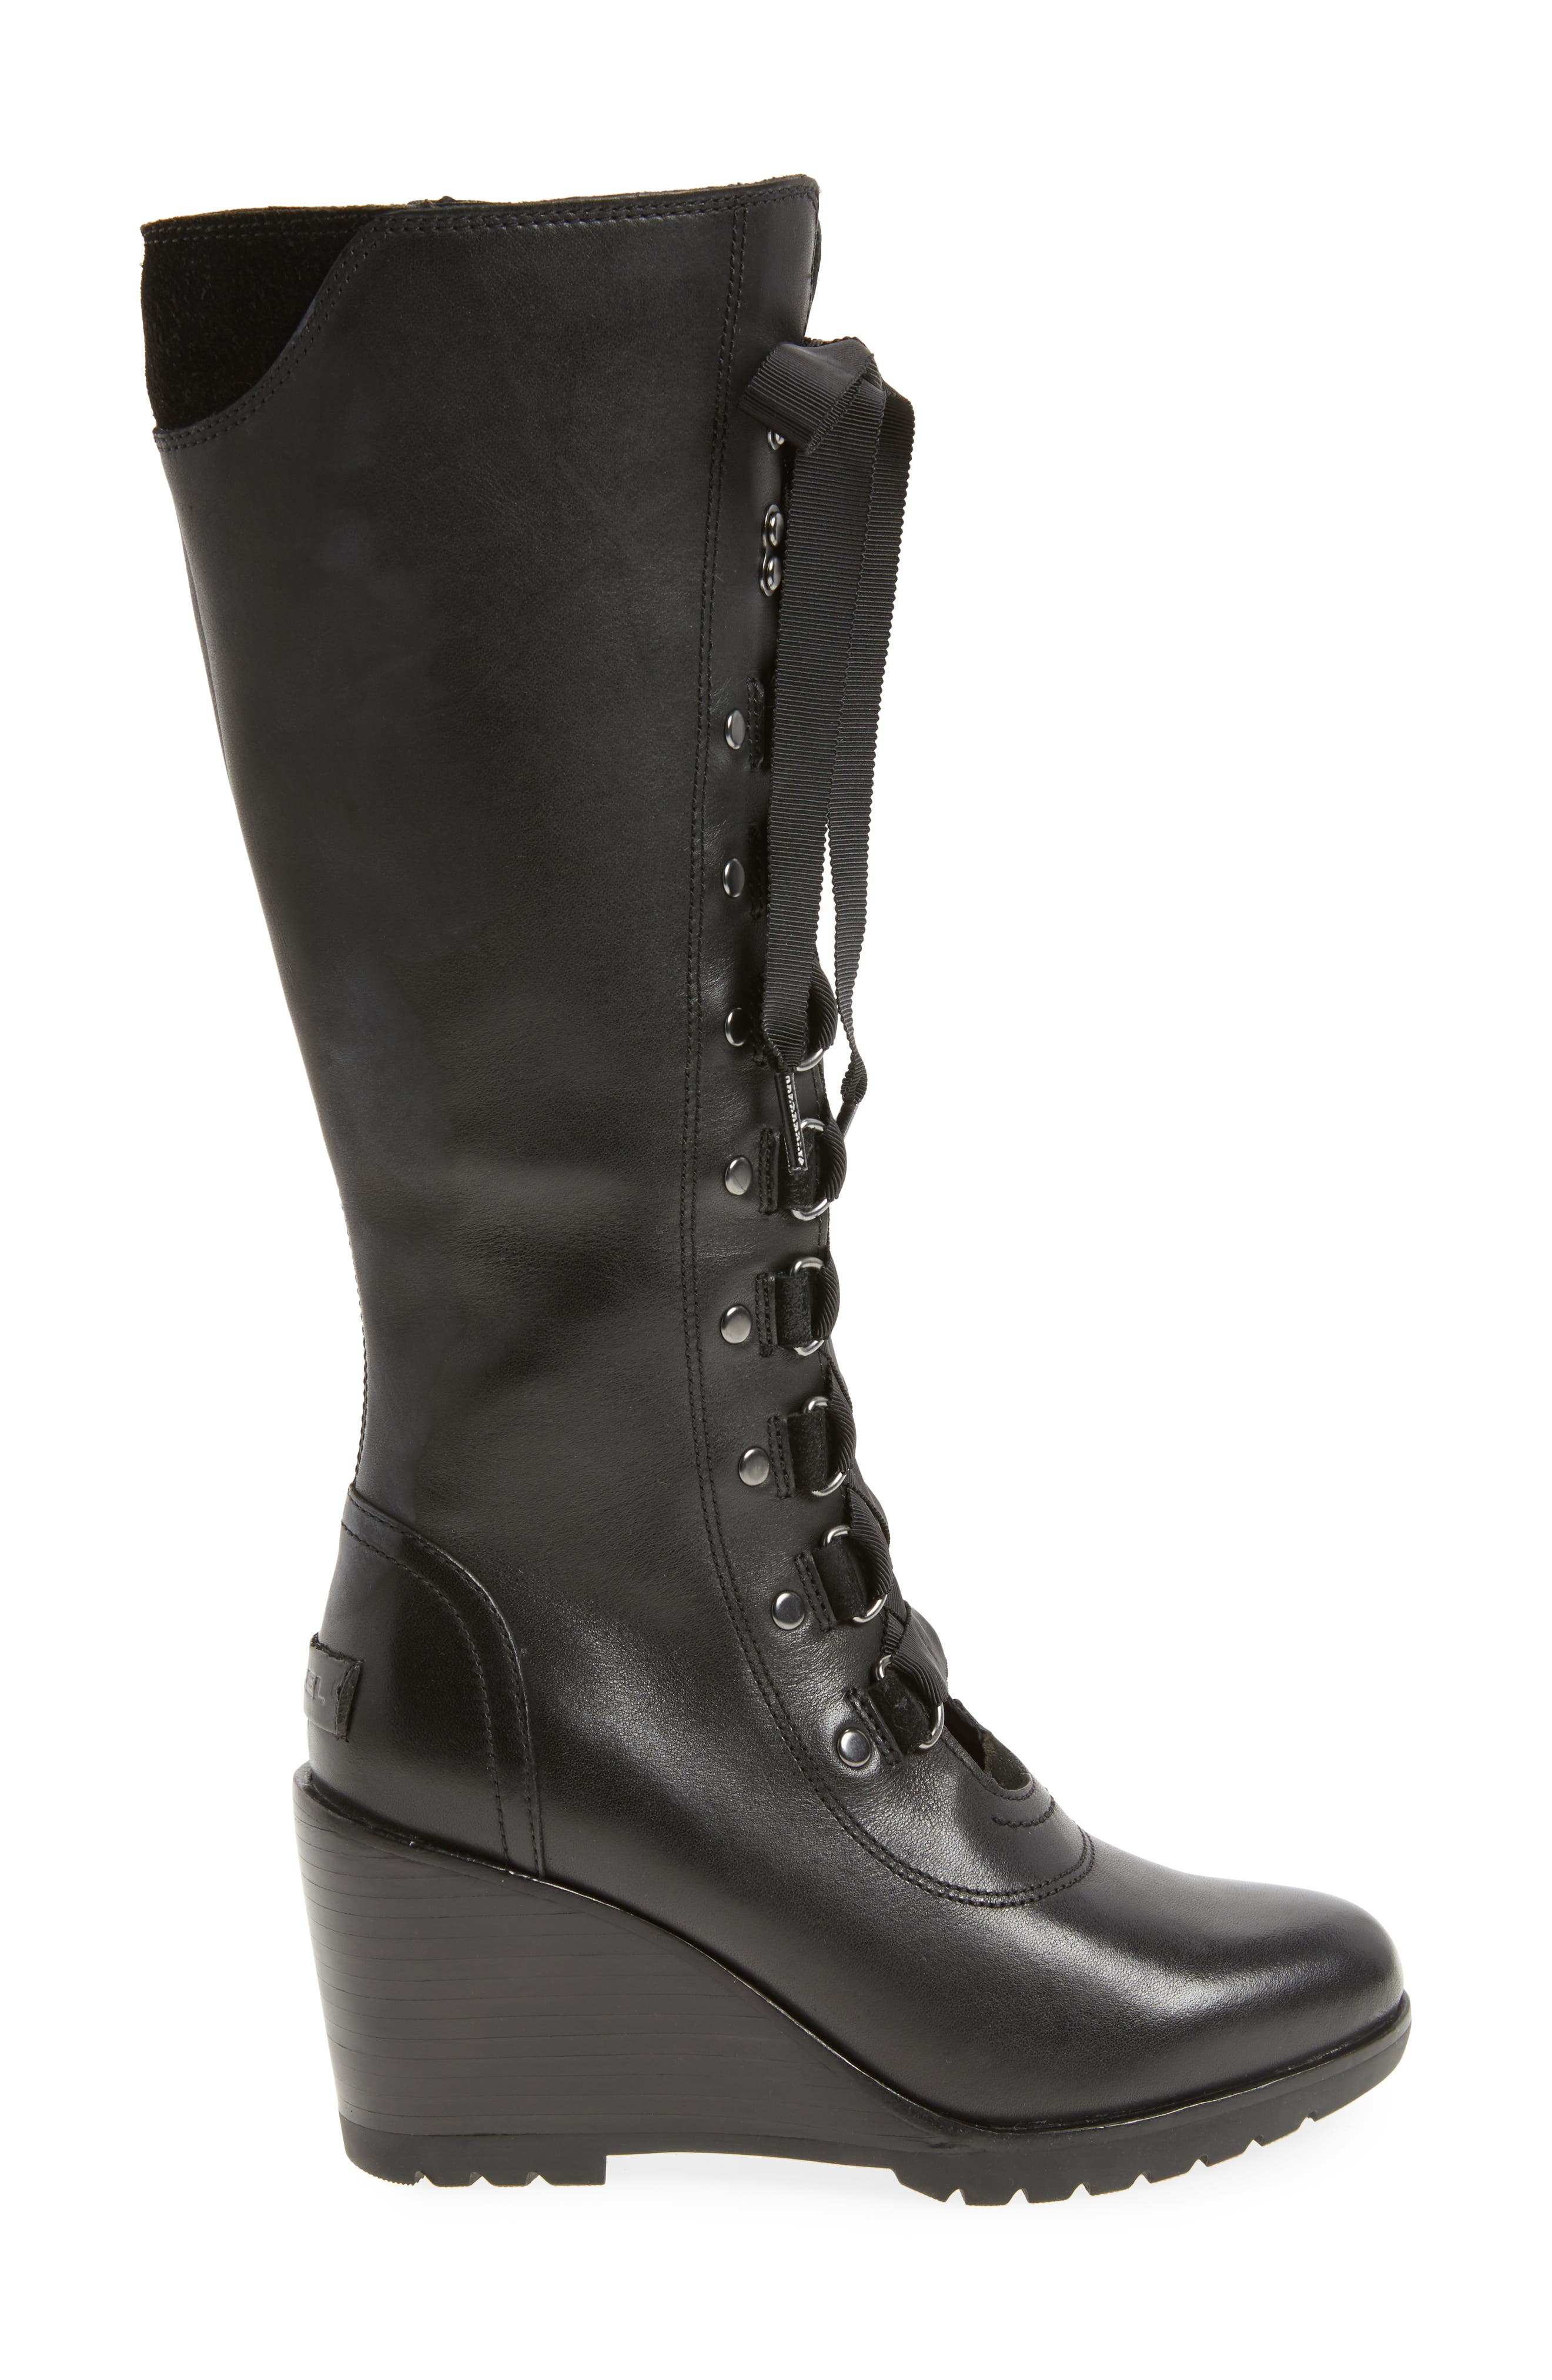 After Hours Lace Up Wedge Boot,                             Alternate thumbnail 3, color,                             010